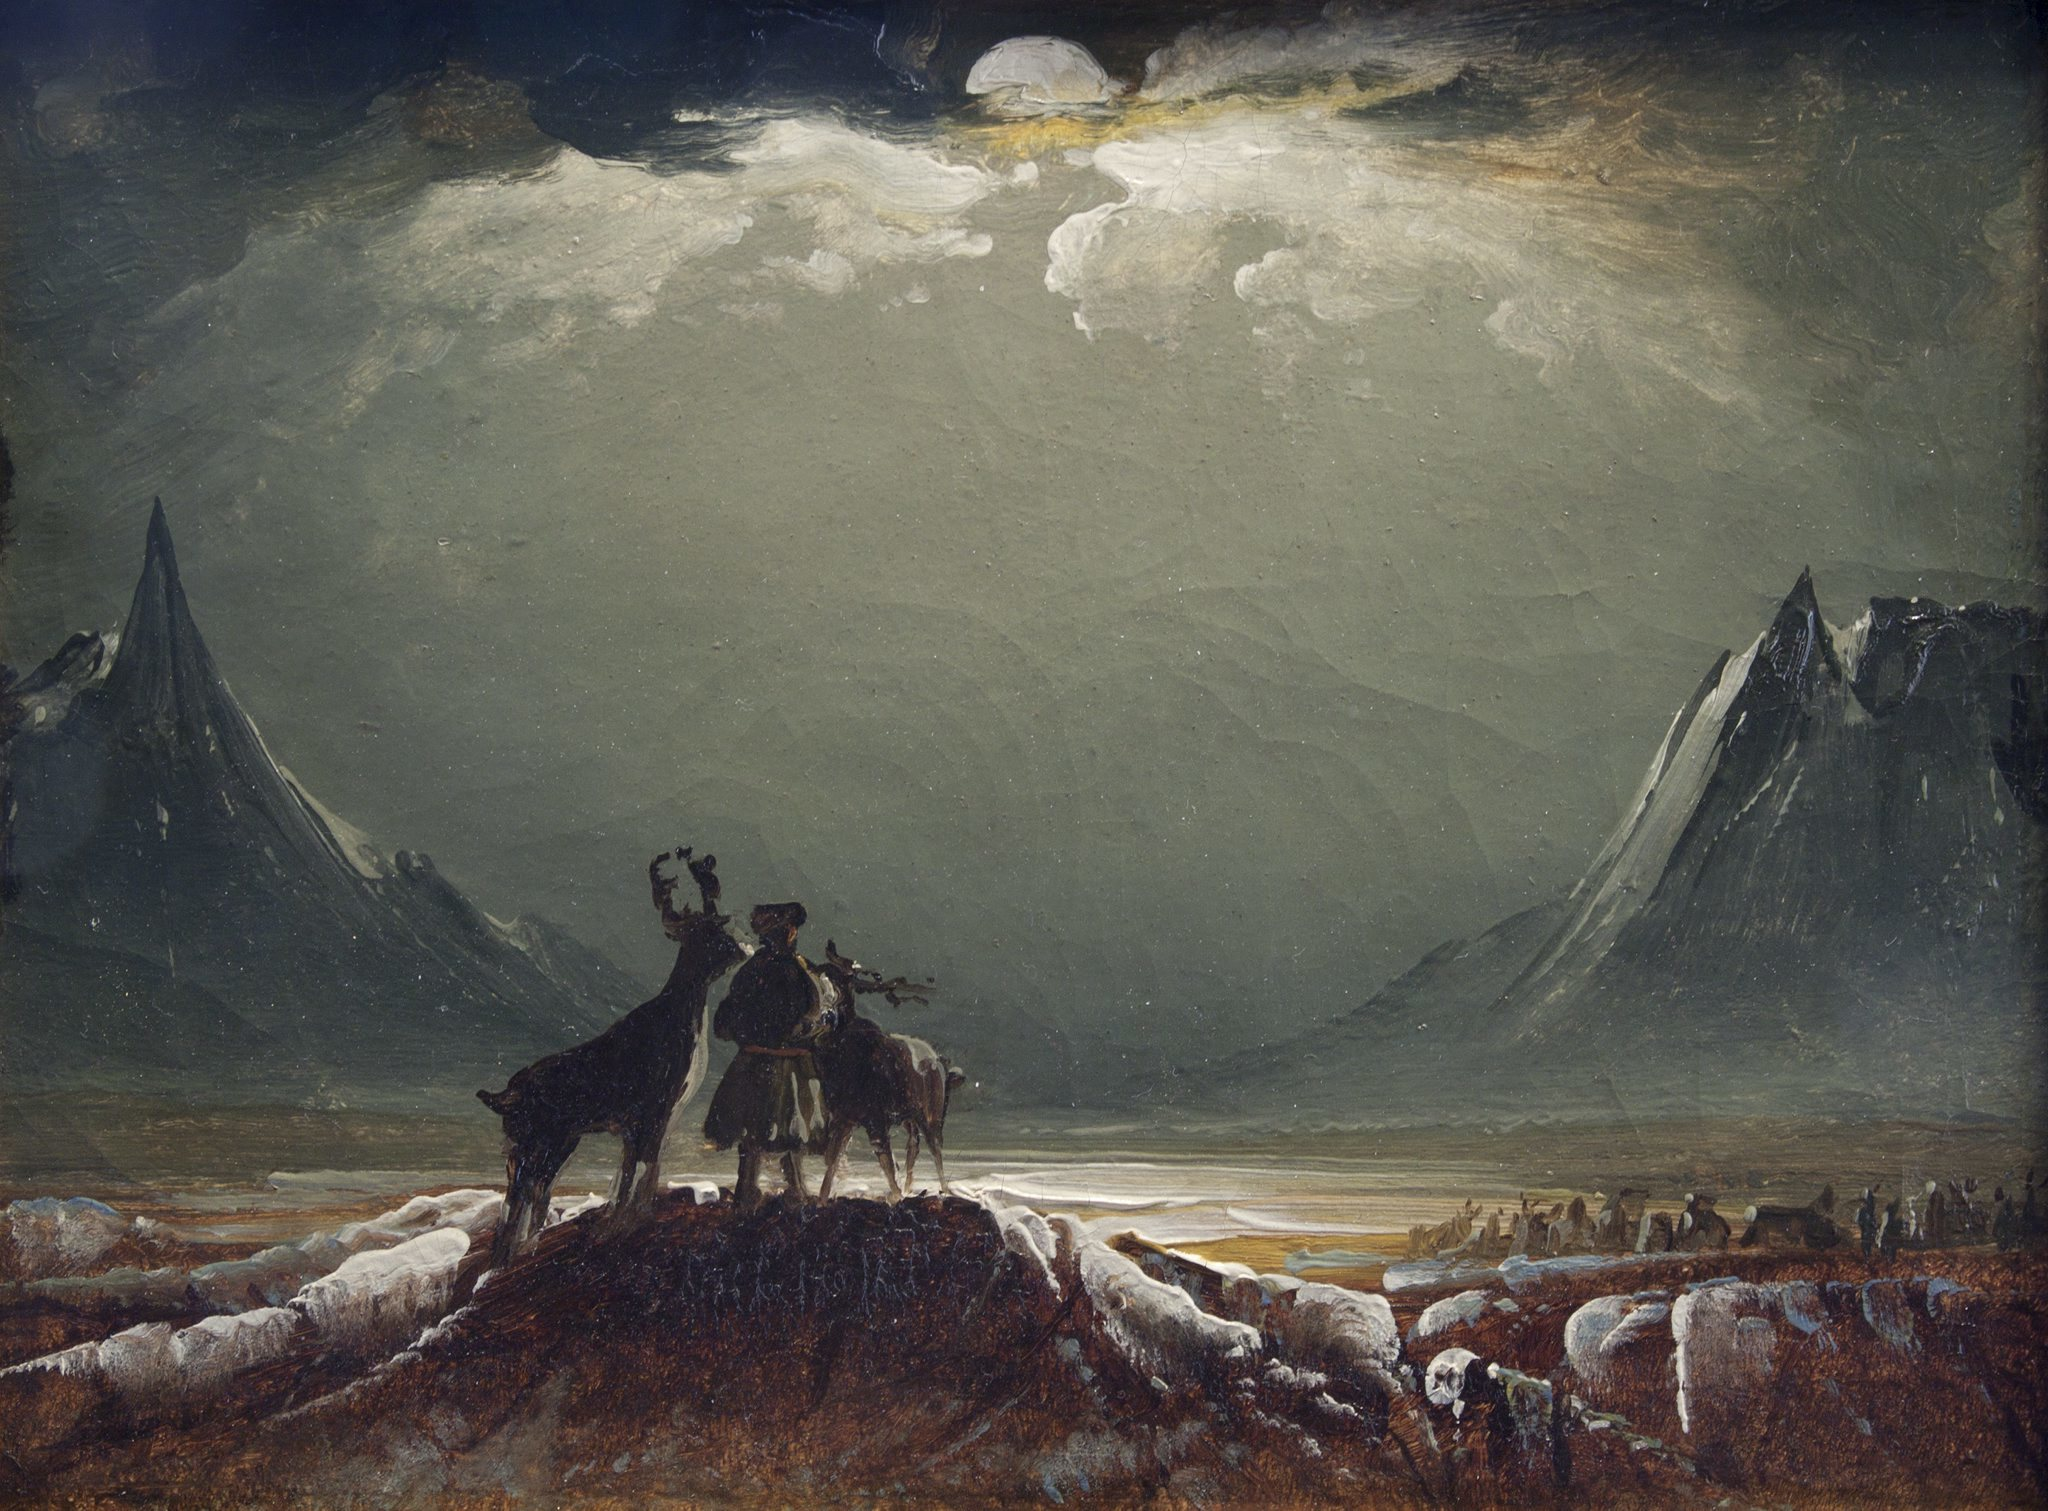 ('Landscape from Finnmark with Sámi and Reindeer', about 1850)